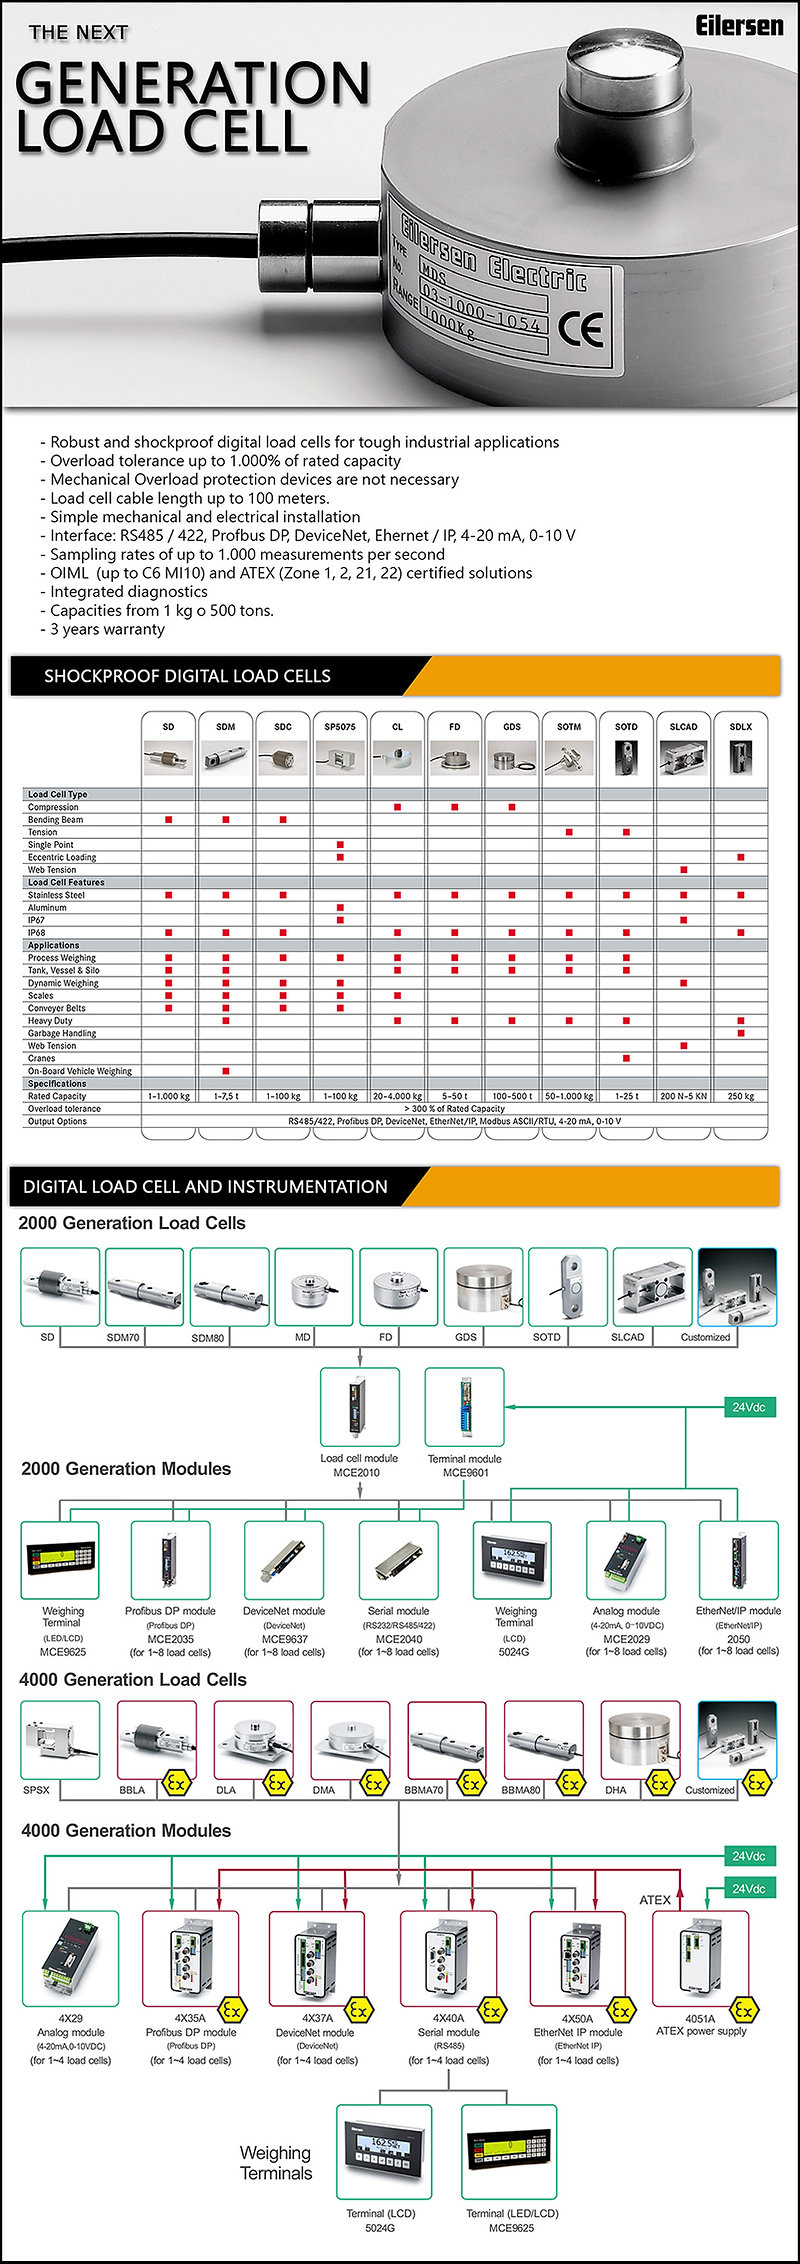 Eilersen_Load Cell Catalogue.jpg